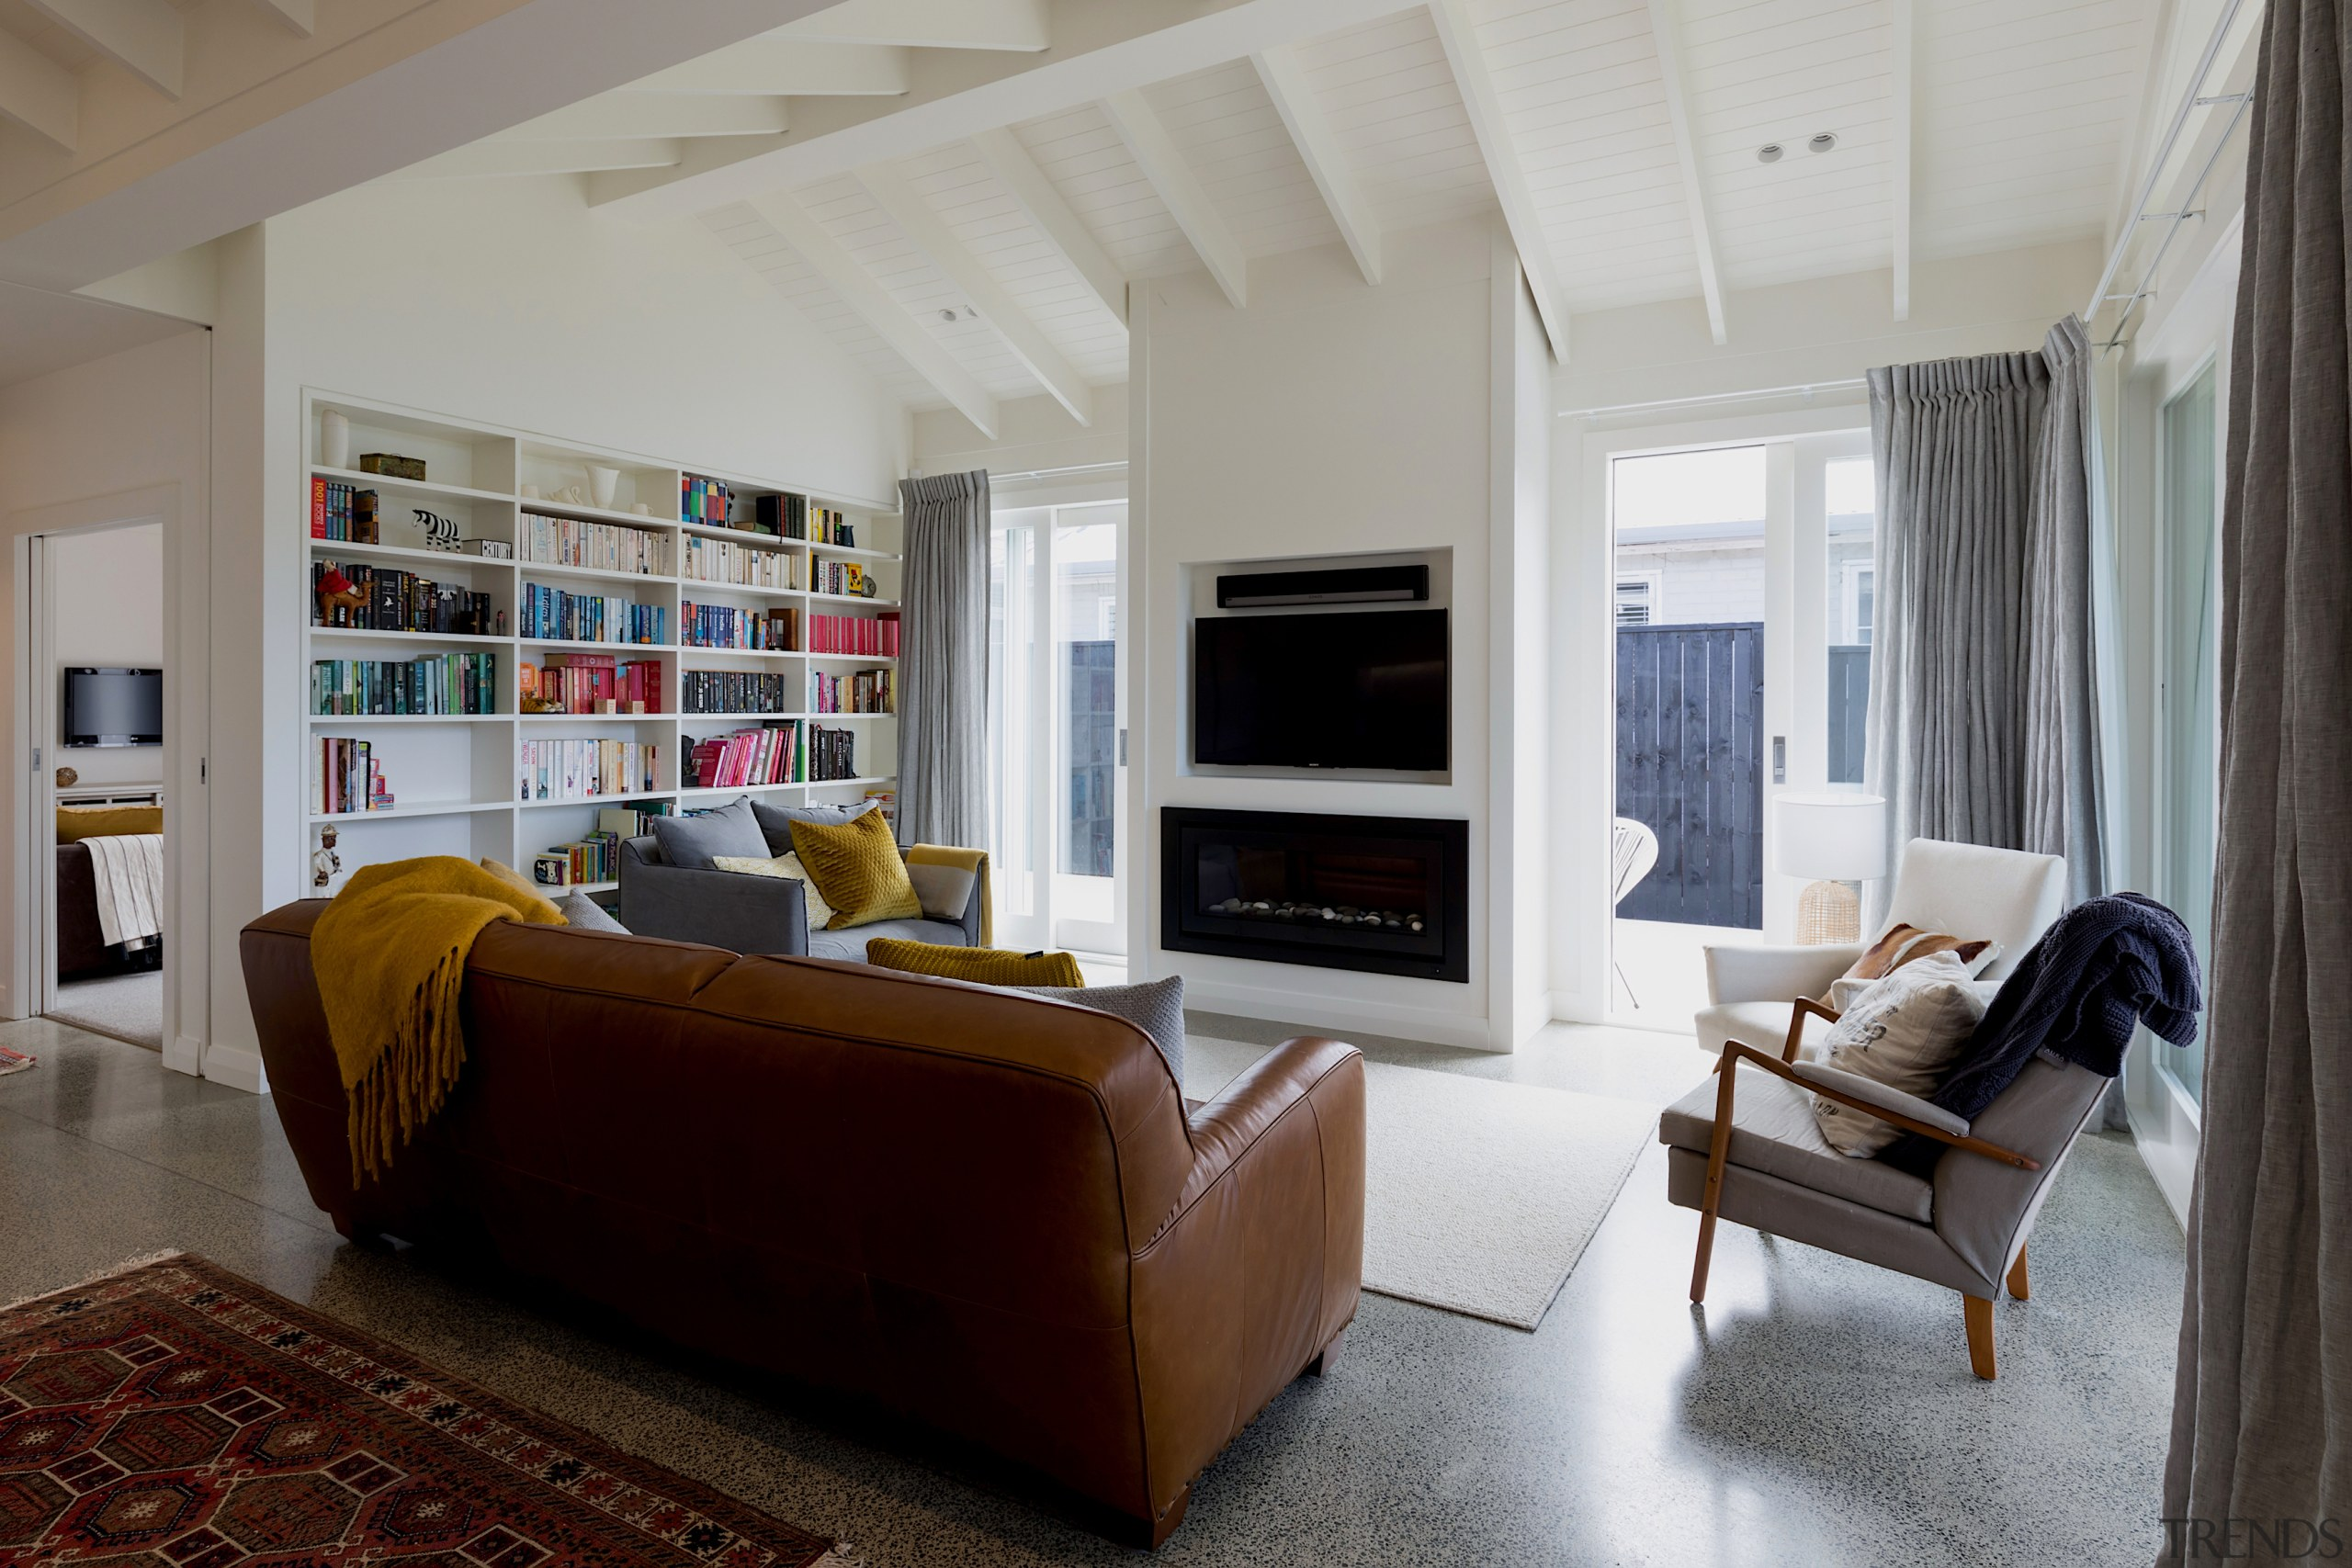 A built-in book case adds further character to